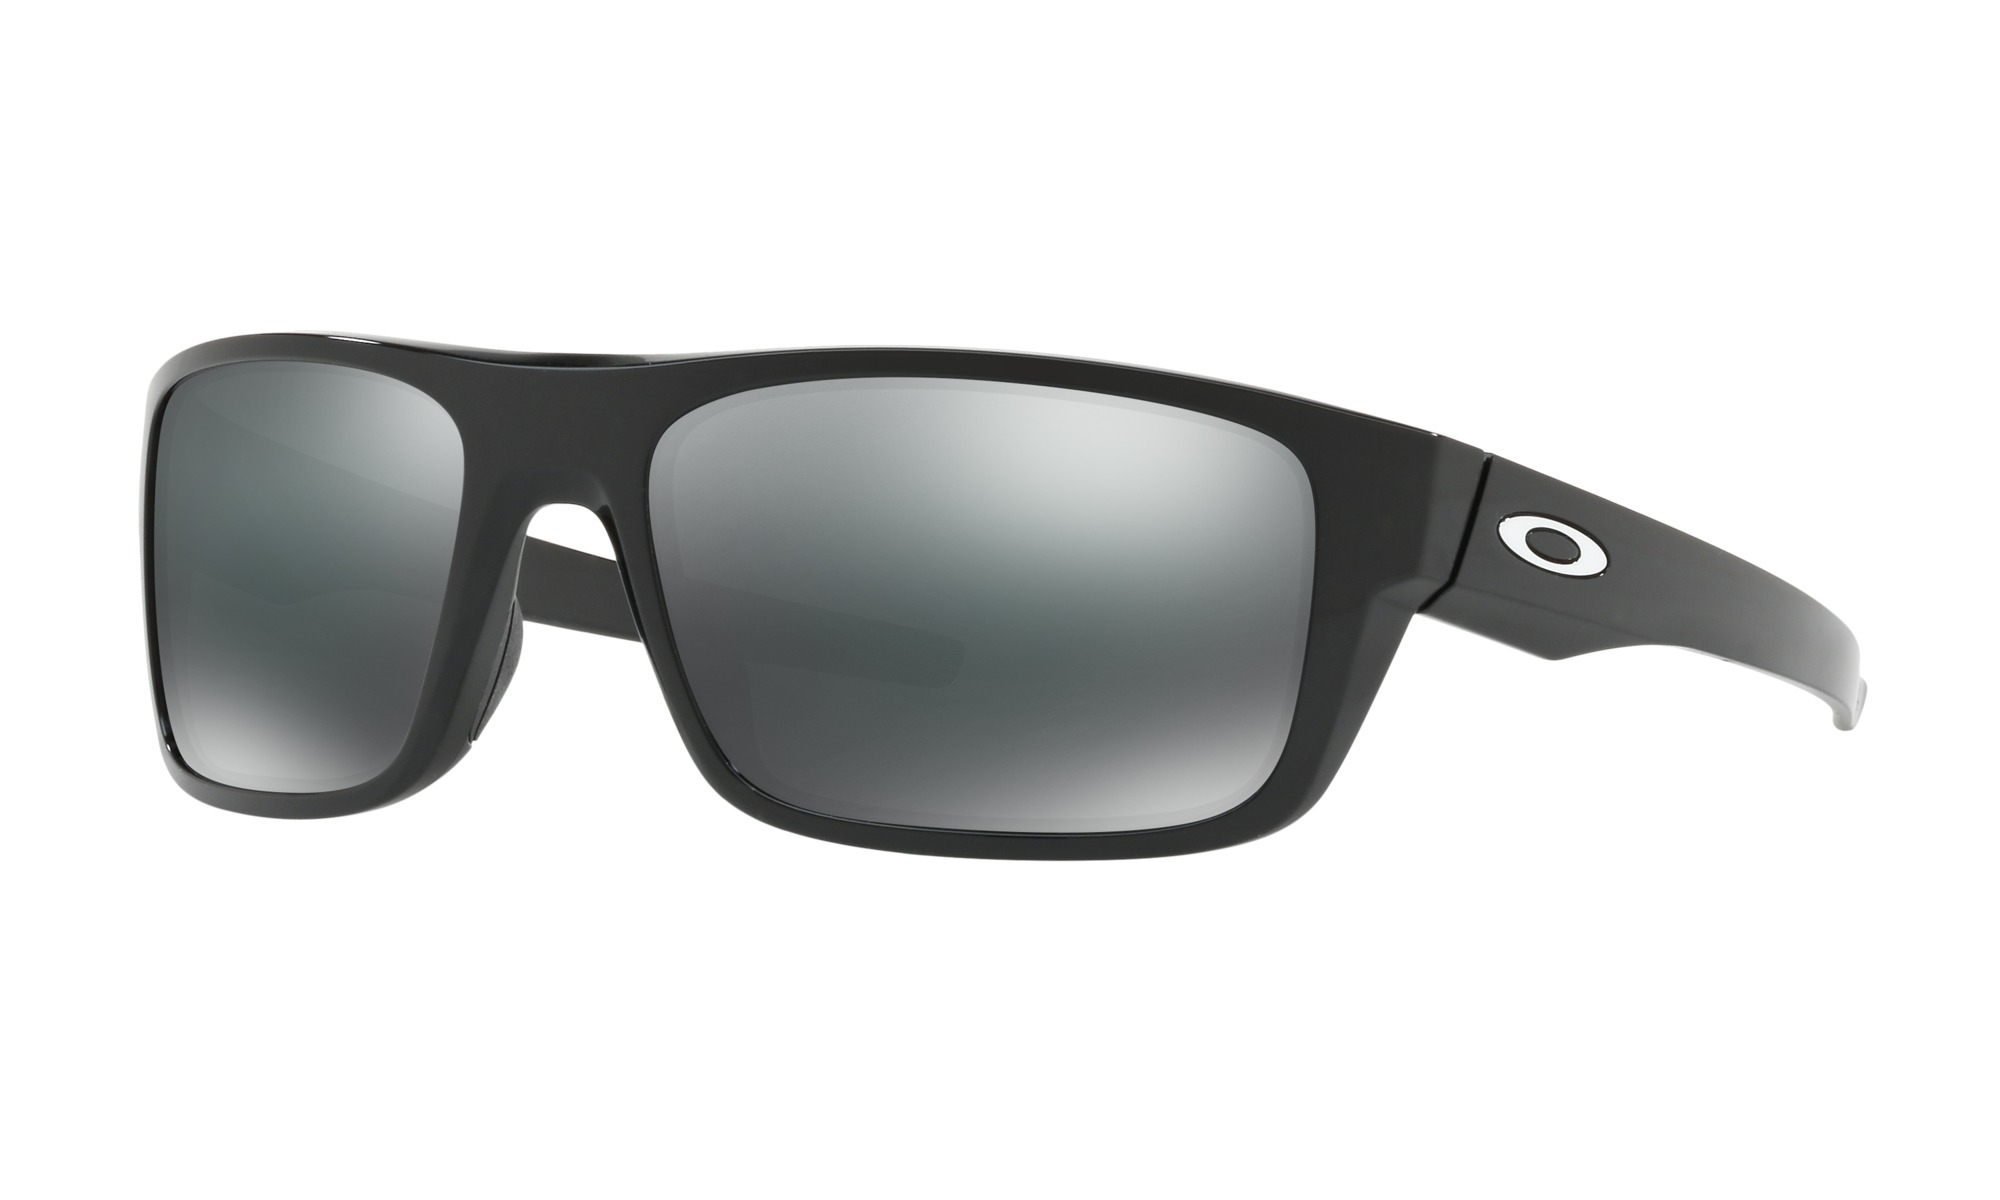 Oakley Model: DROP POINT 9367, Colour Code: 01, Frame Colour: Matte black